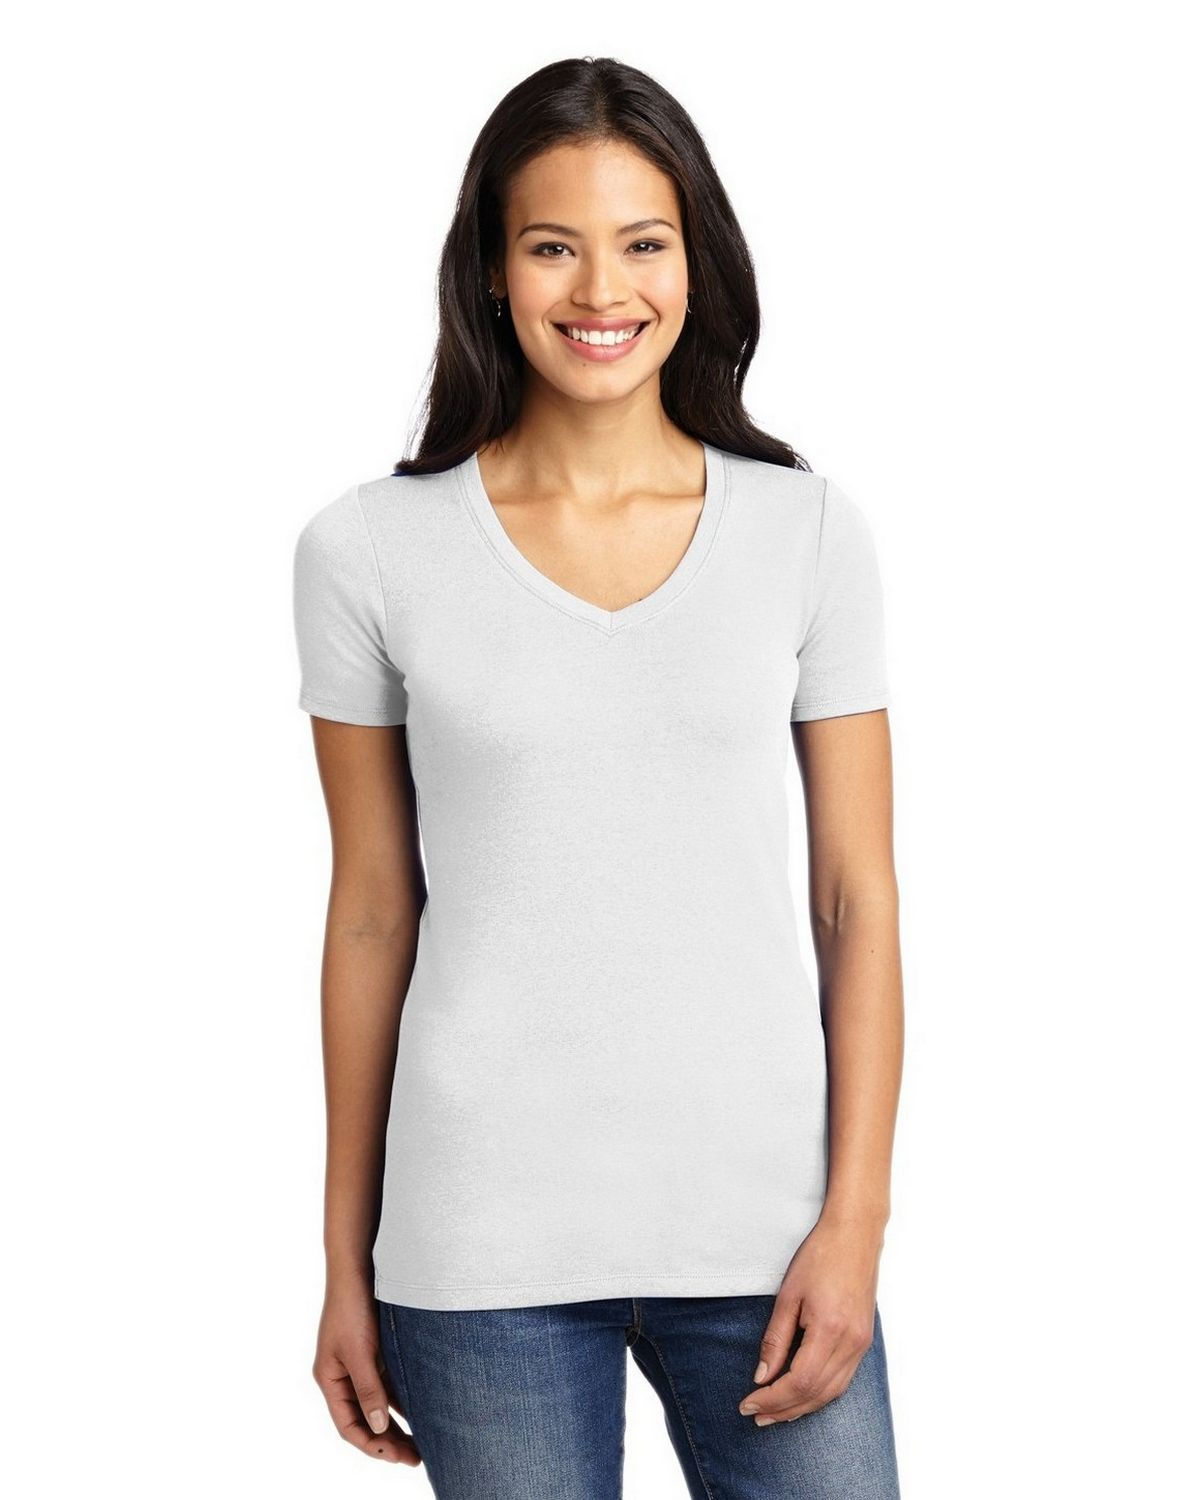 f66f63397a1f Buy Port Authority LM1005 Ladies Concept Stretch V-Neck Tee